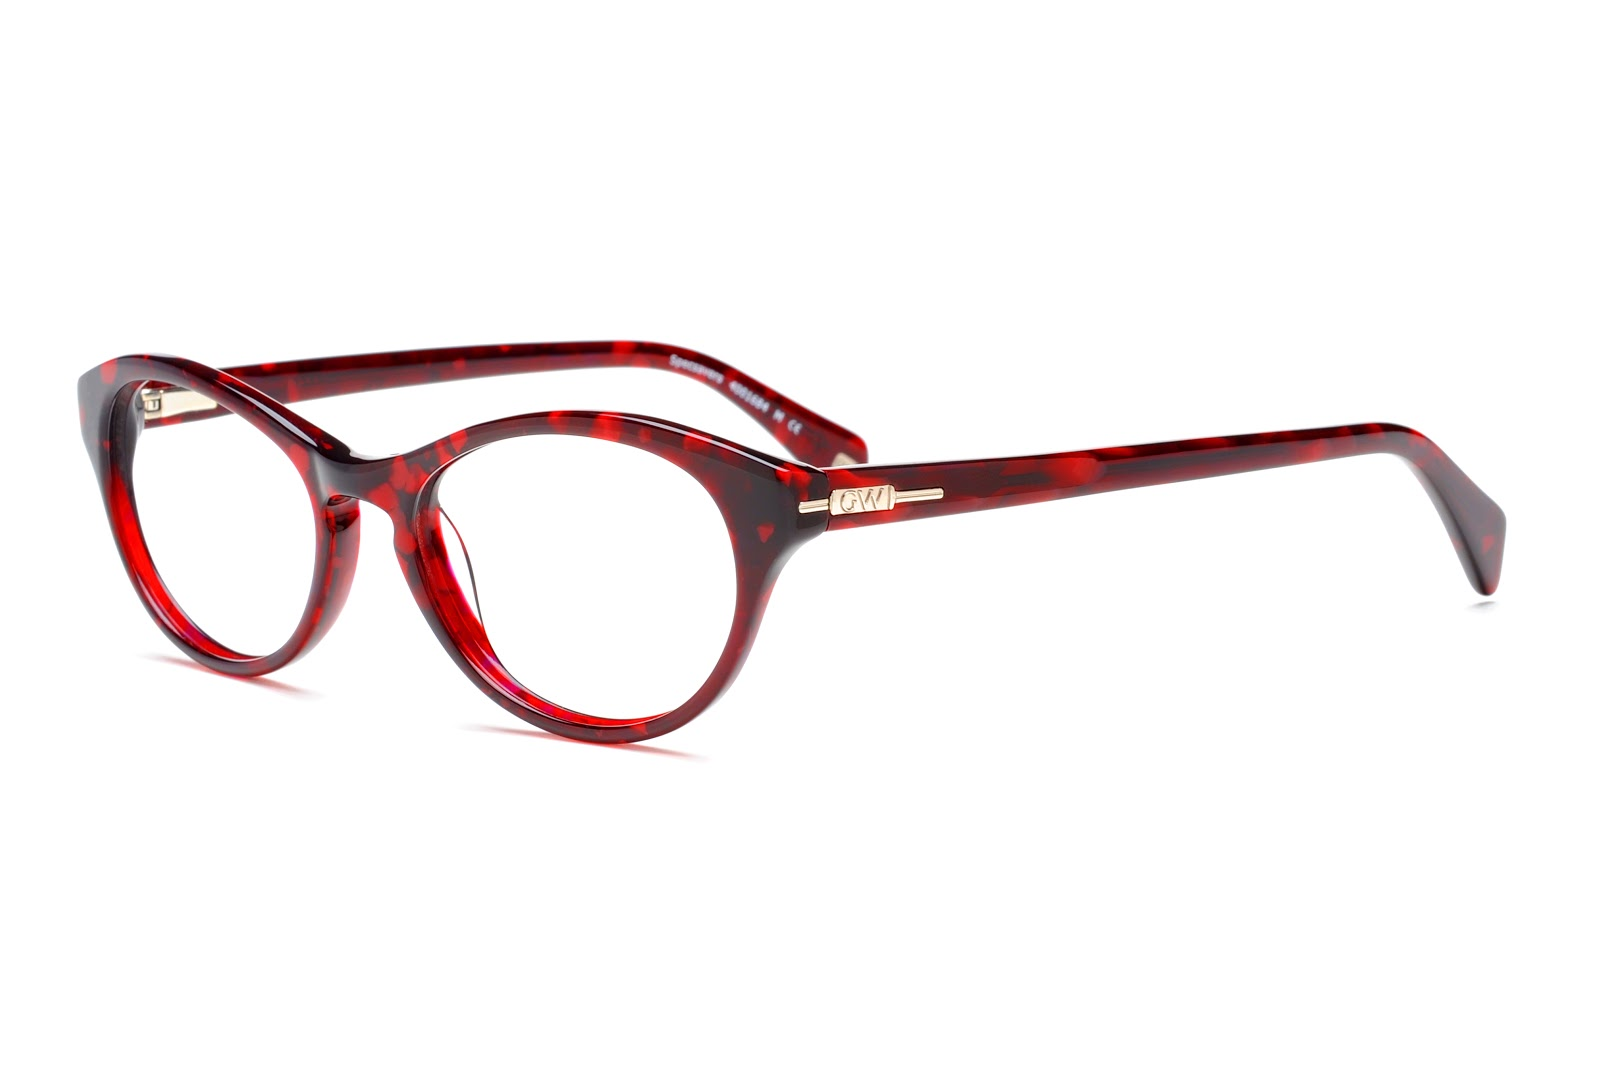 get the look for less with specsavers